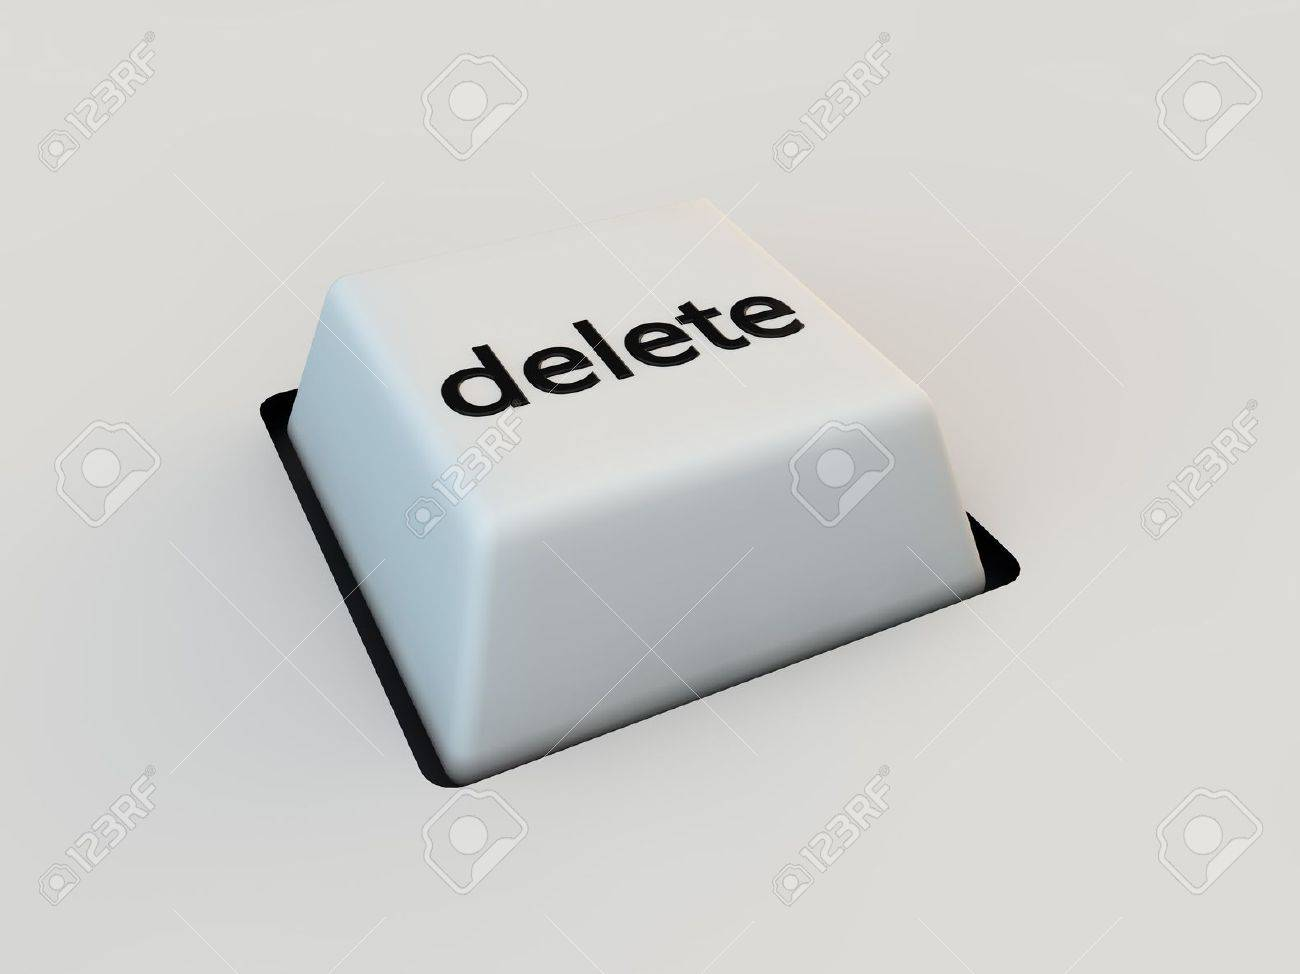 Delete Keyboard Button Over White Background Stock Photo, Picture ...